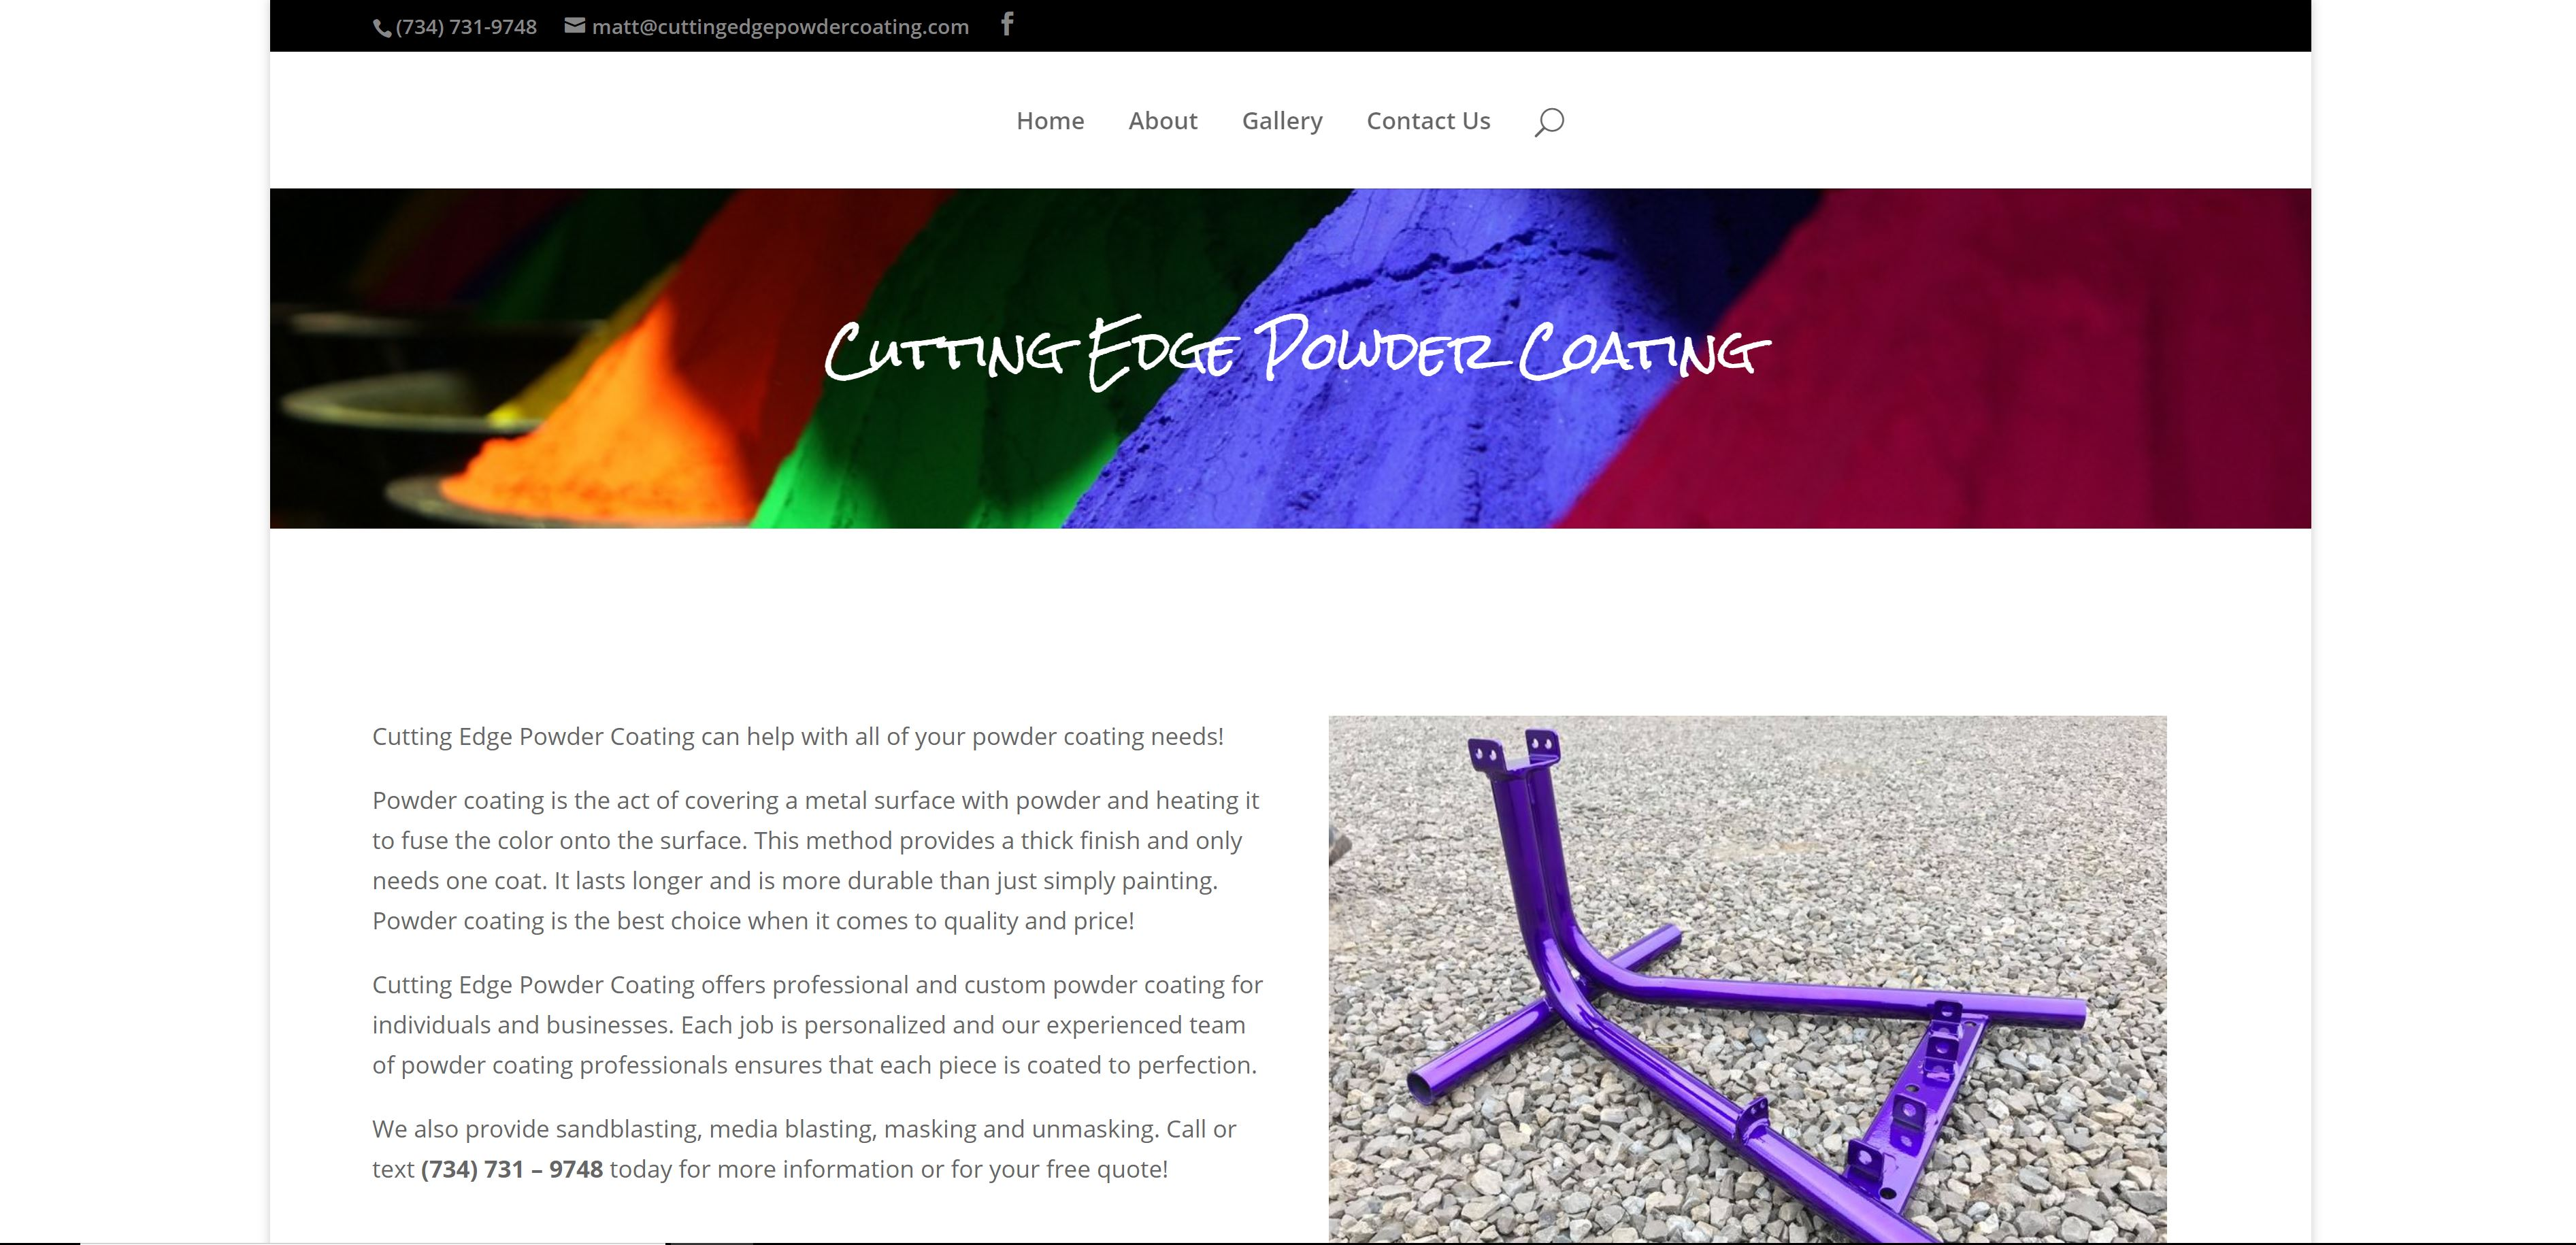 Cutting Edge Powder Coating by WP3 Web Design